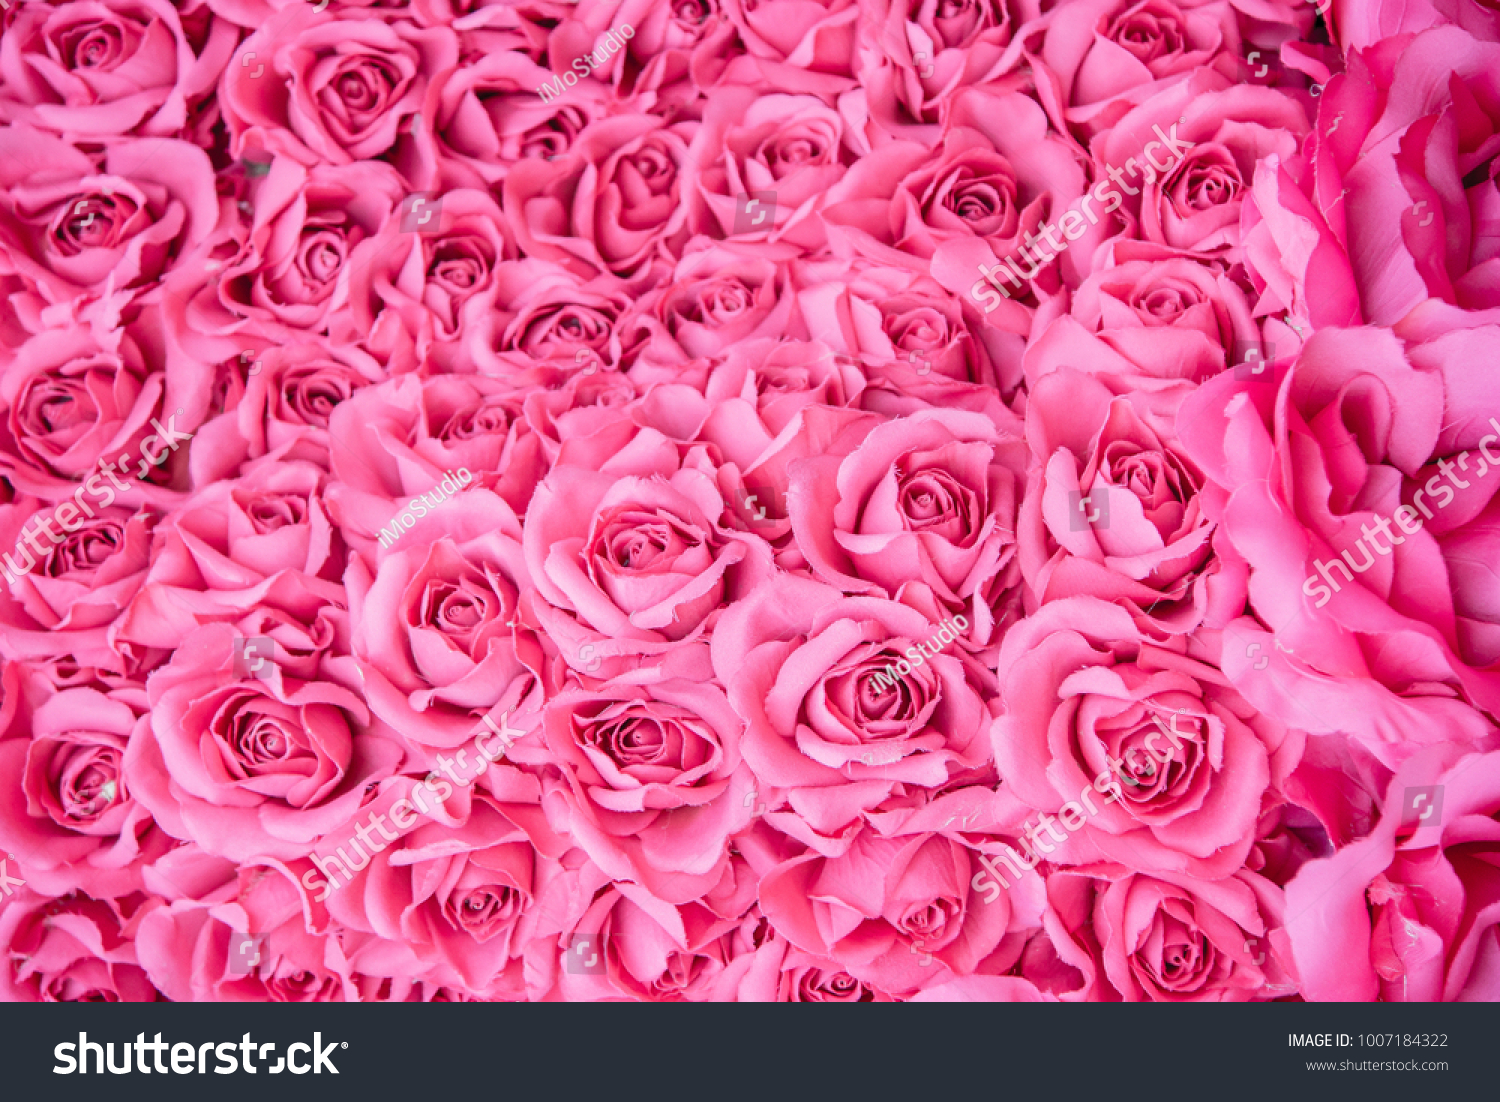 Beautiful Blooming Rose Pink Flowers Background Stock Photo Royalty